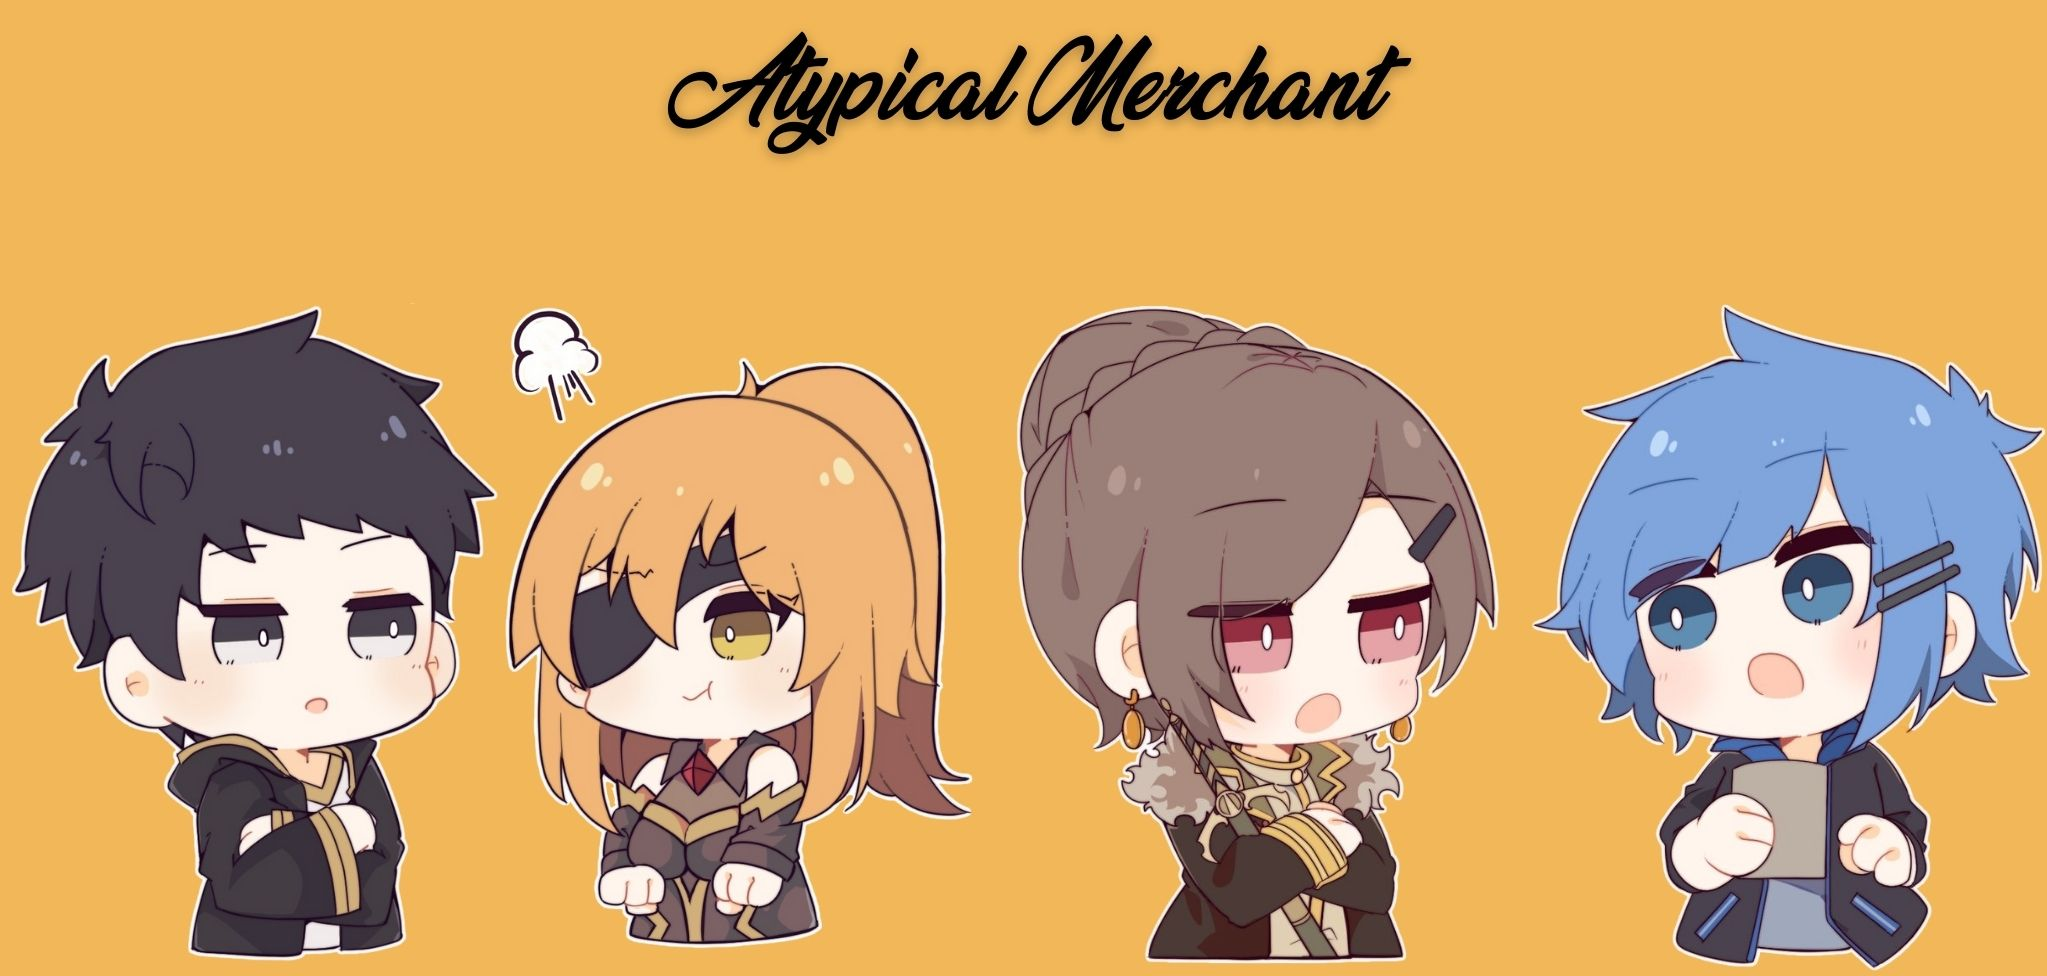 A group image of Atypical Merchant characters in chibi form.